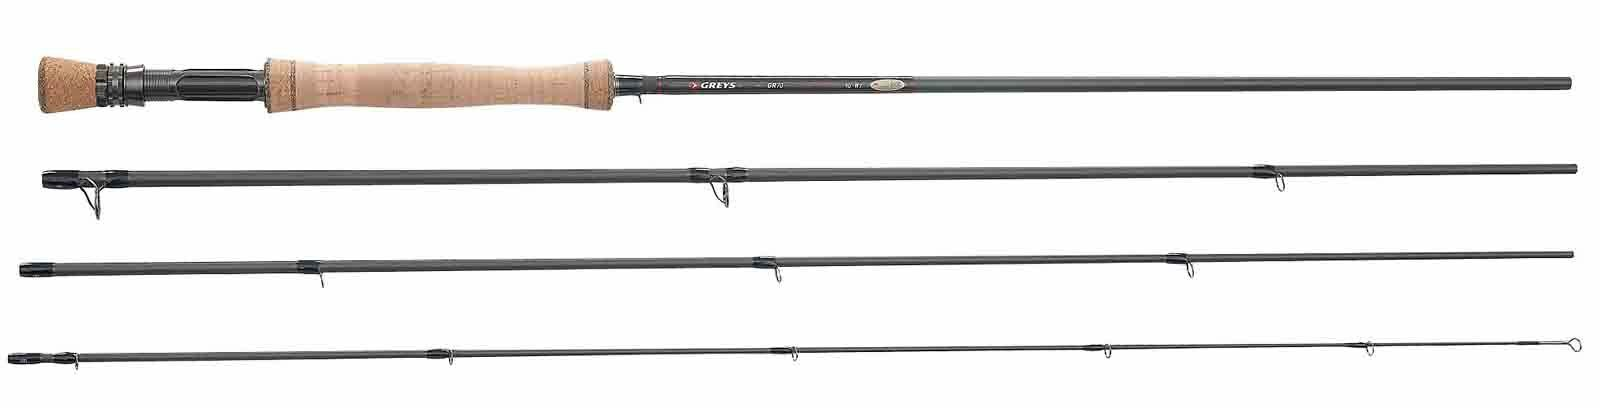 Greys GR70 4 Piece Competitor Special Trout   Salmon Fly Fishing Rod - All Sizes